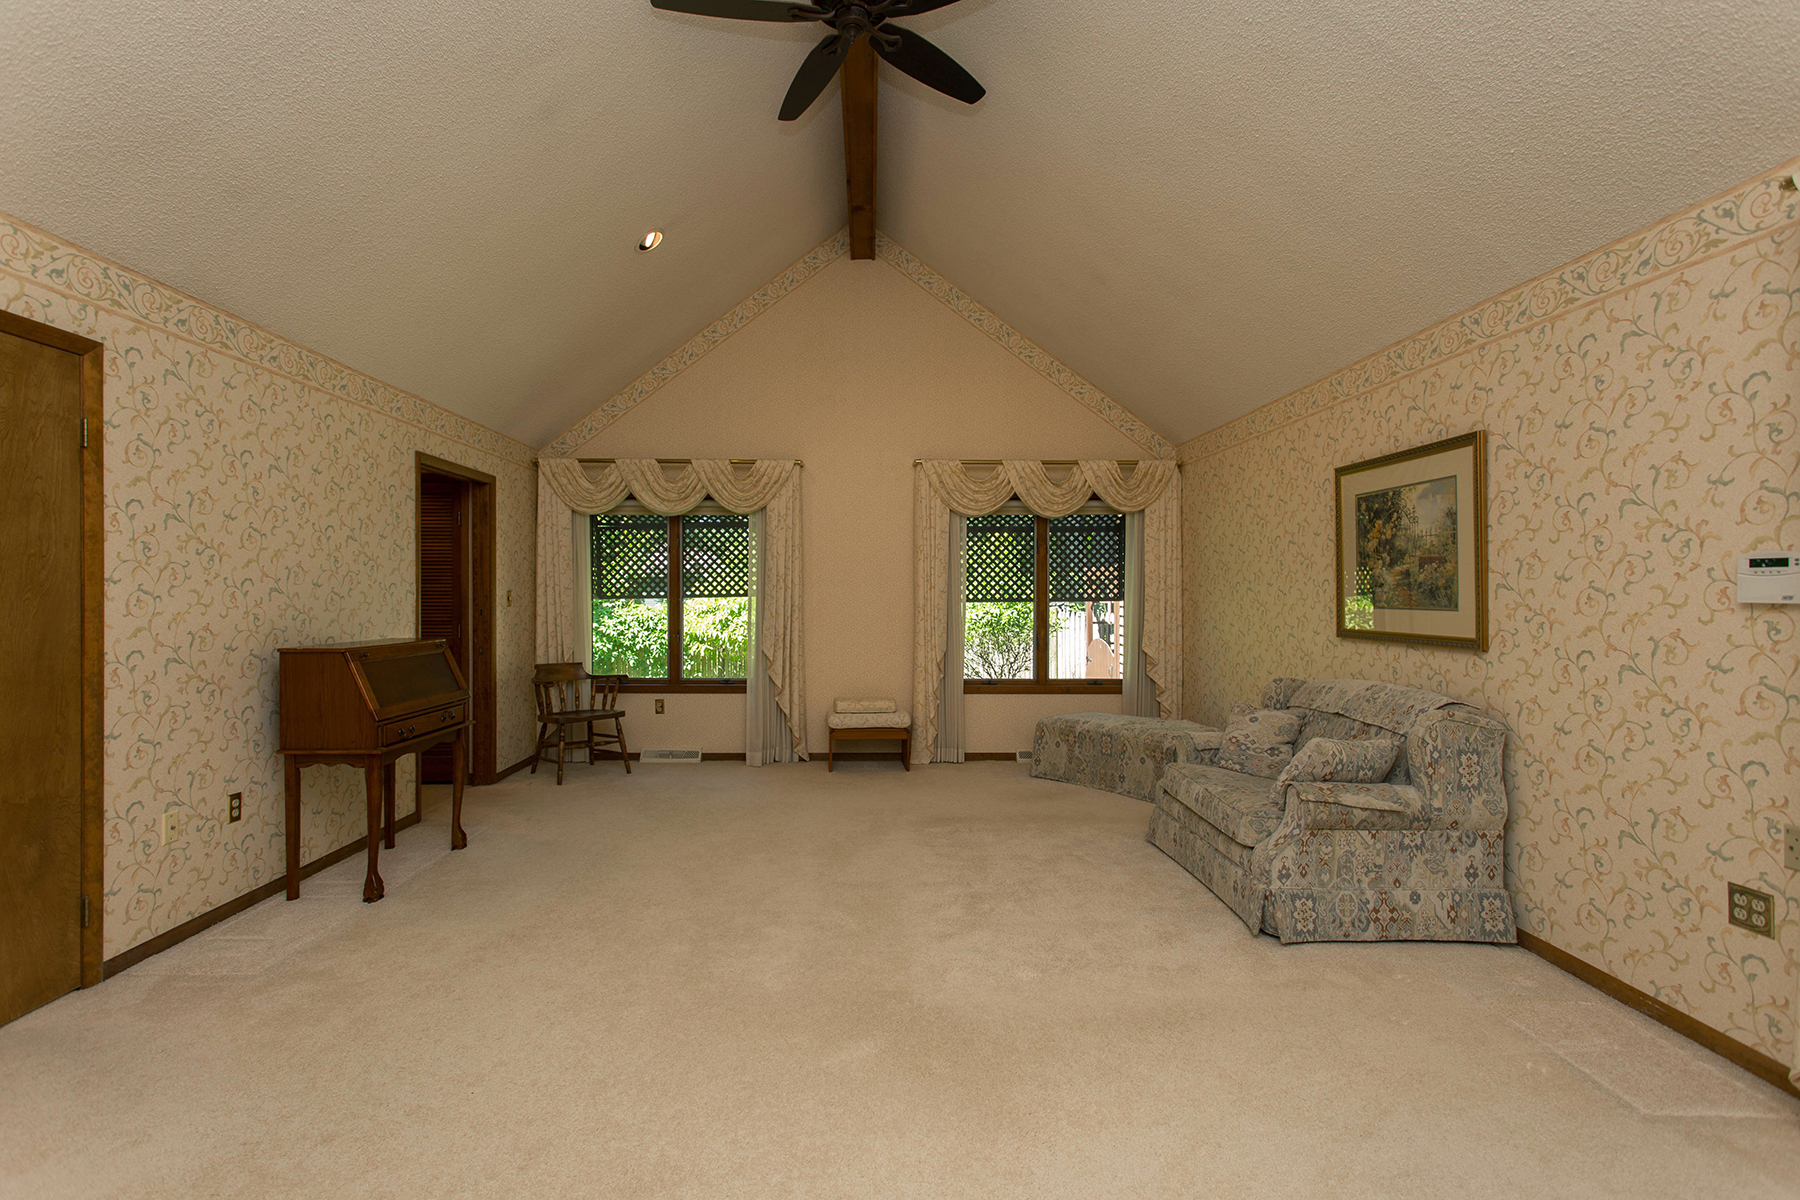 Additional photo for property listing at Heated Indoor Pool 3  Mystic La Saratoga Springs, New York 12866 United States